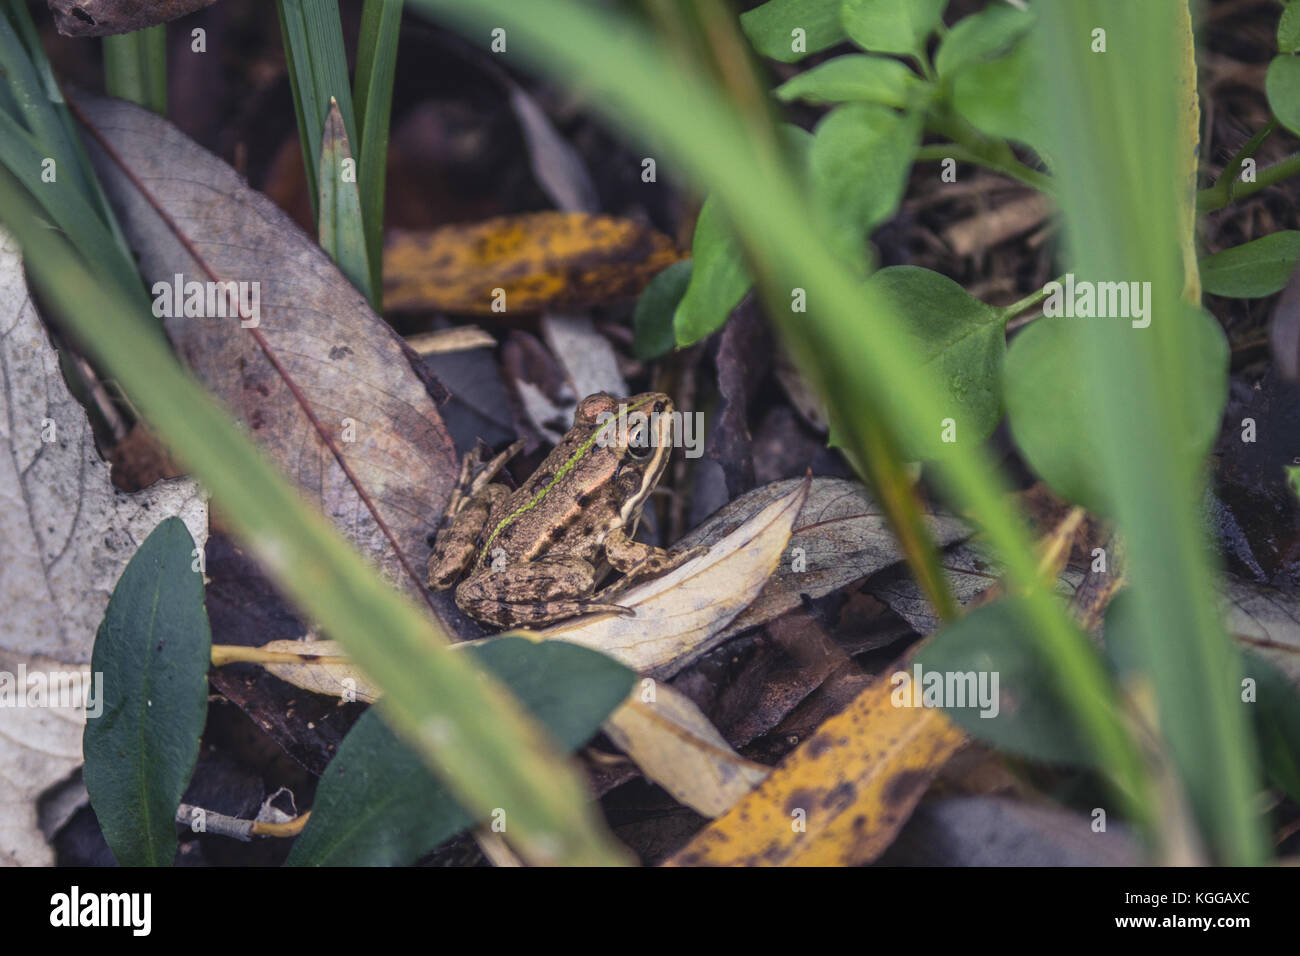 Edible frog (pelophylax kl. esculentus ex rana esculenta), sitting on the ground among dry leaves on autumn day - Stock Image